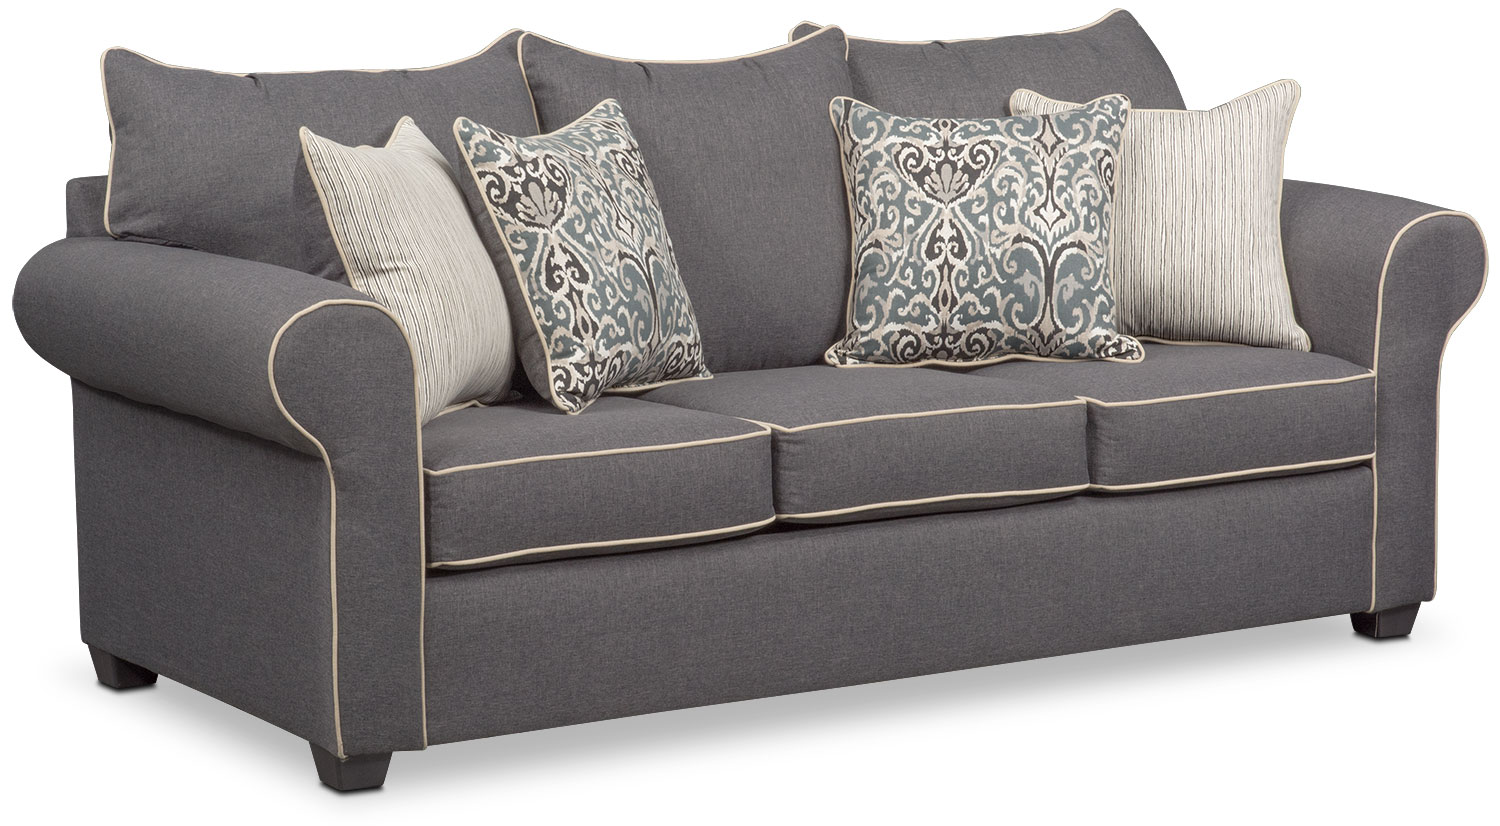 Carla Sofa Loveseat And Accent Chair Set Gray American  ~ Sofa Loveseat And Chair Sets